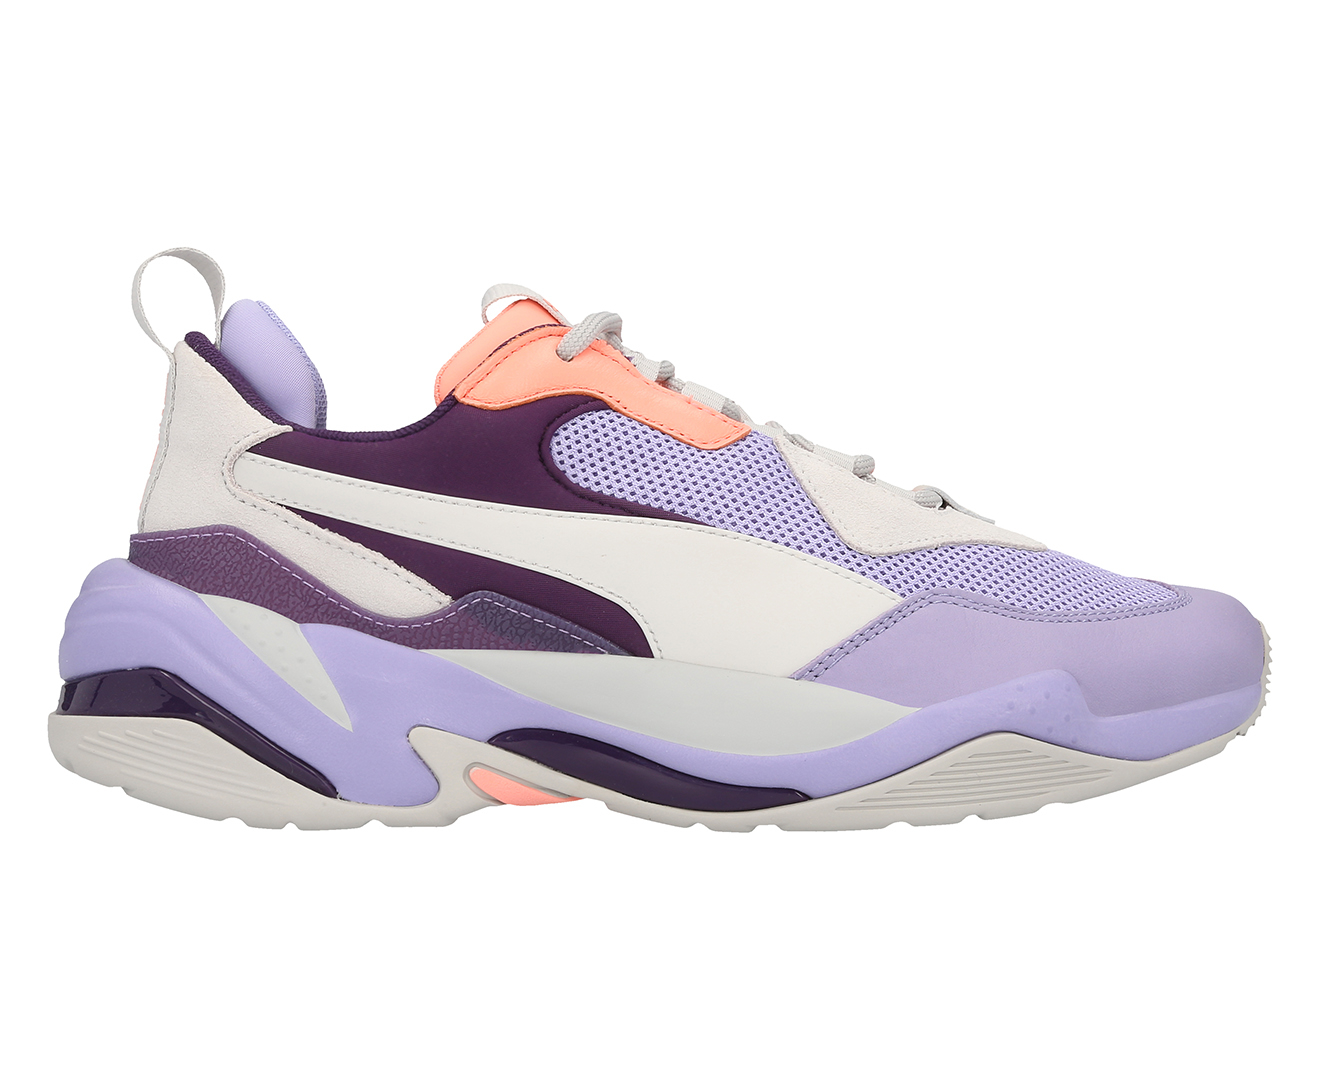 Details about Puma Women's Thunder Spectra Shoe Sweet Lavender Bright Peach